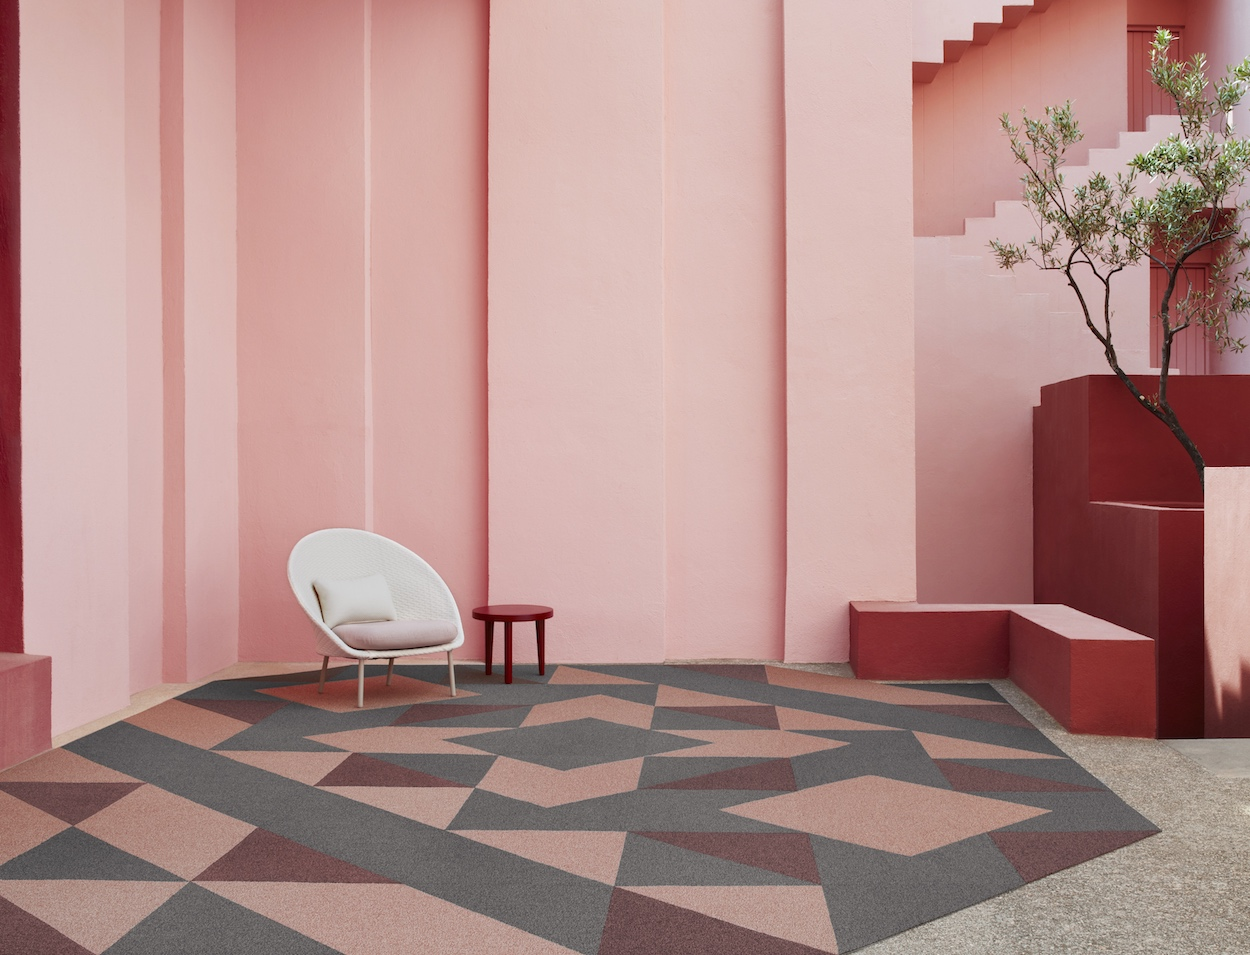 That S The Concept Behind Inside Shapes A New Collection Of Geometric Carpet Tiles By Swedish Design Studio Form Us With Love For Shaw Contract